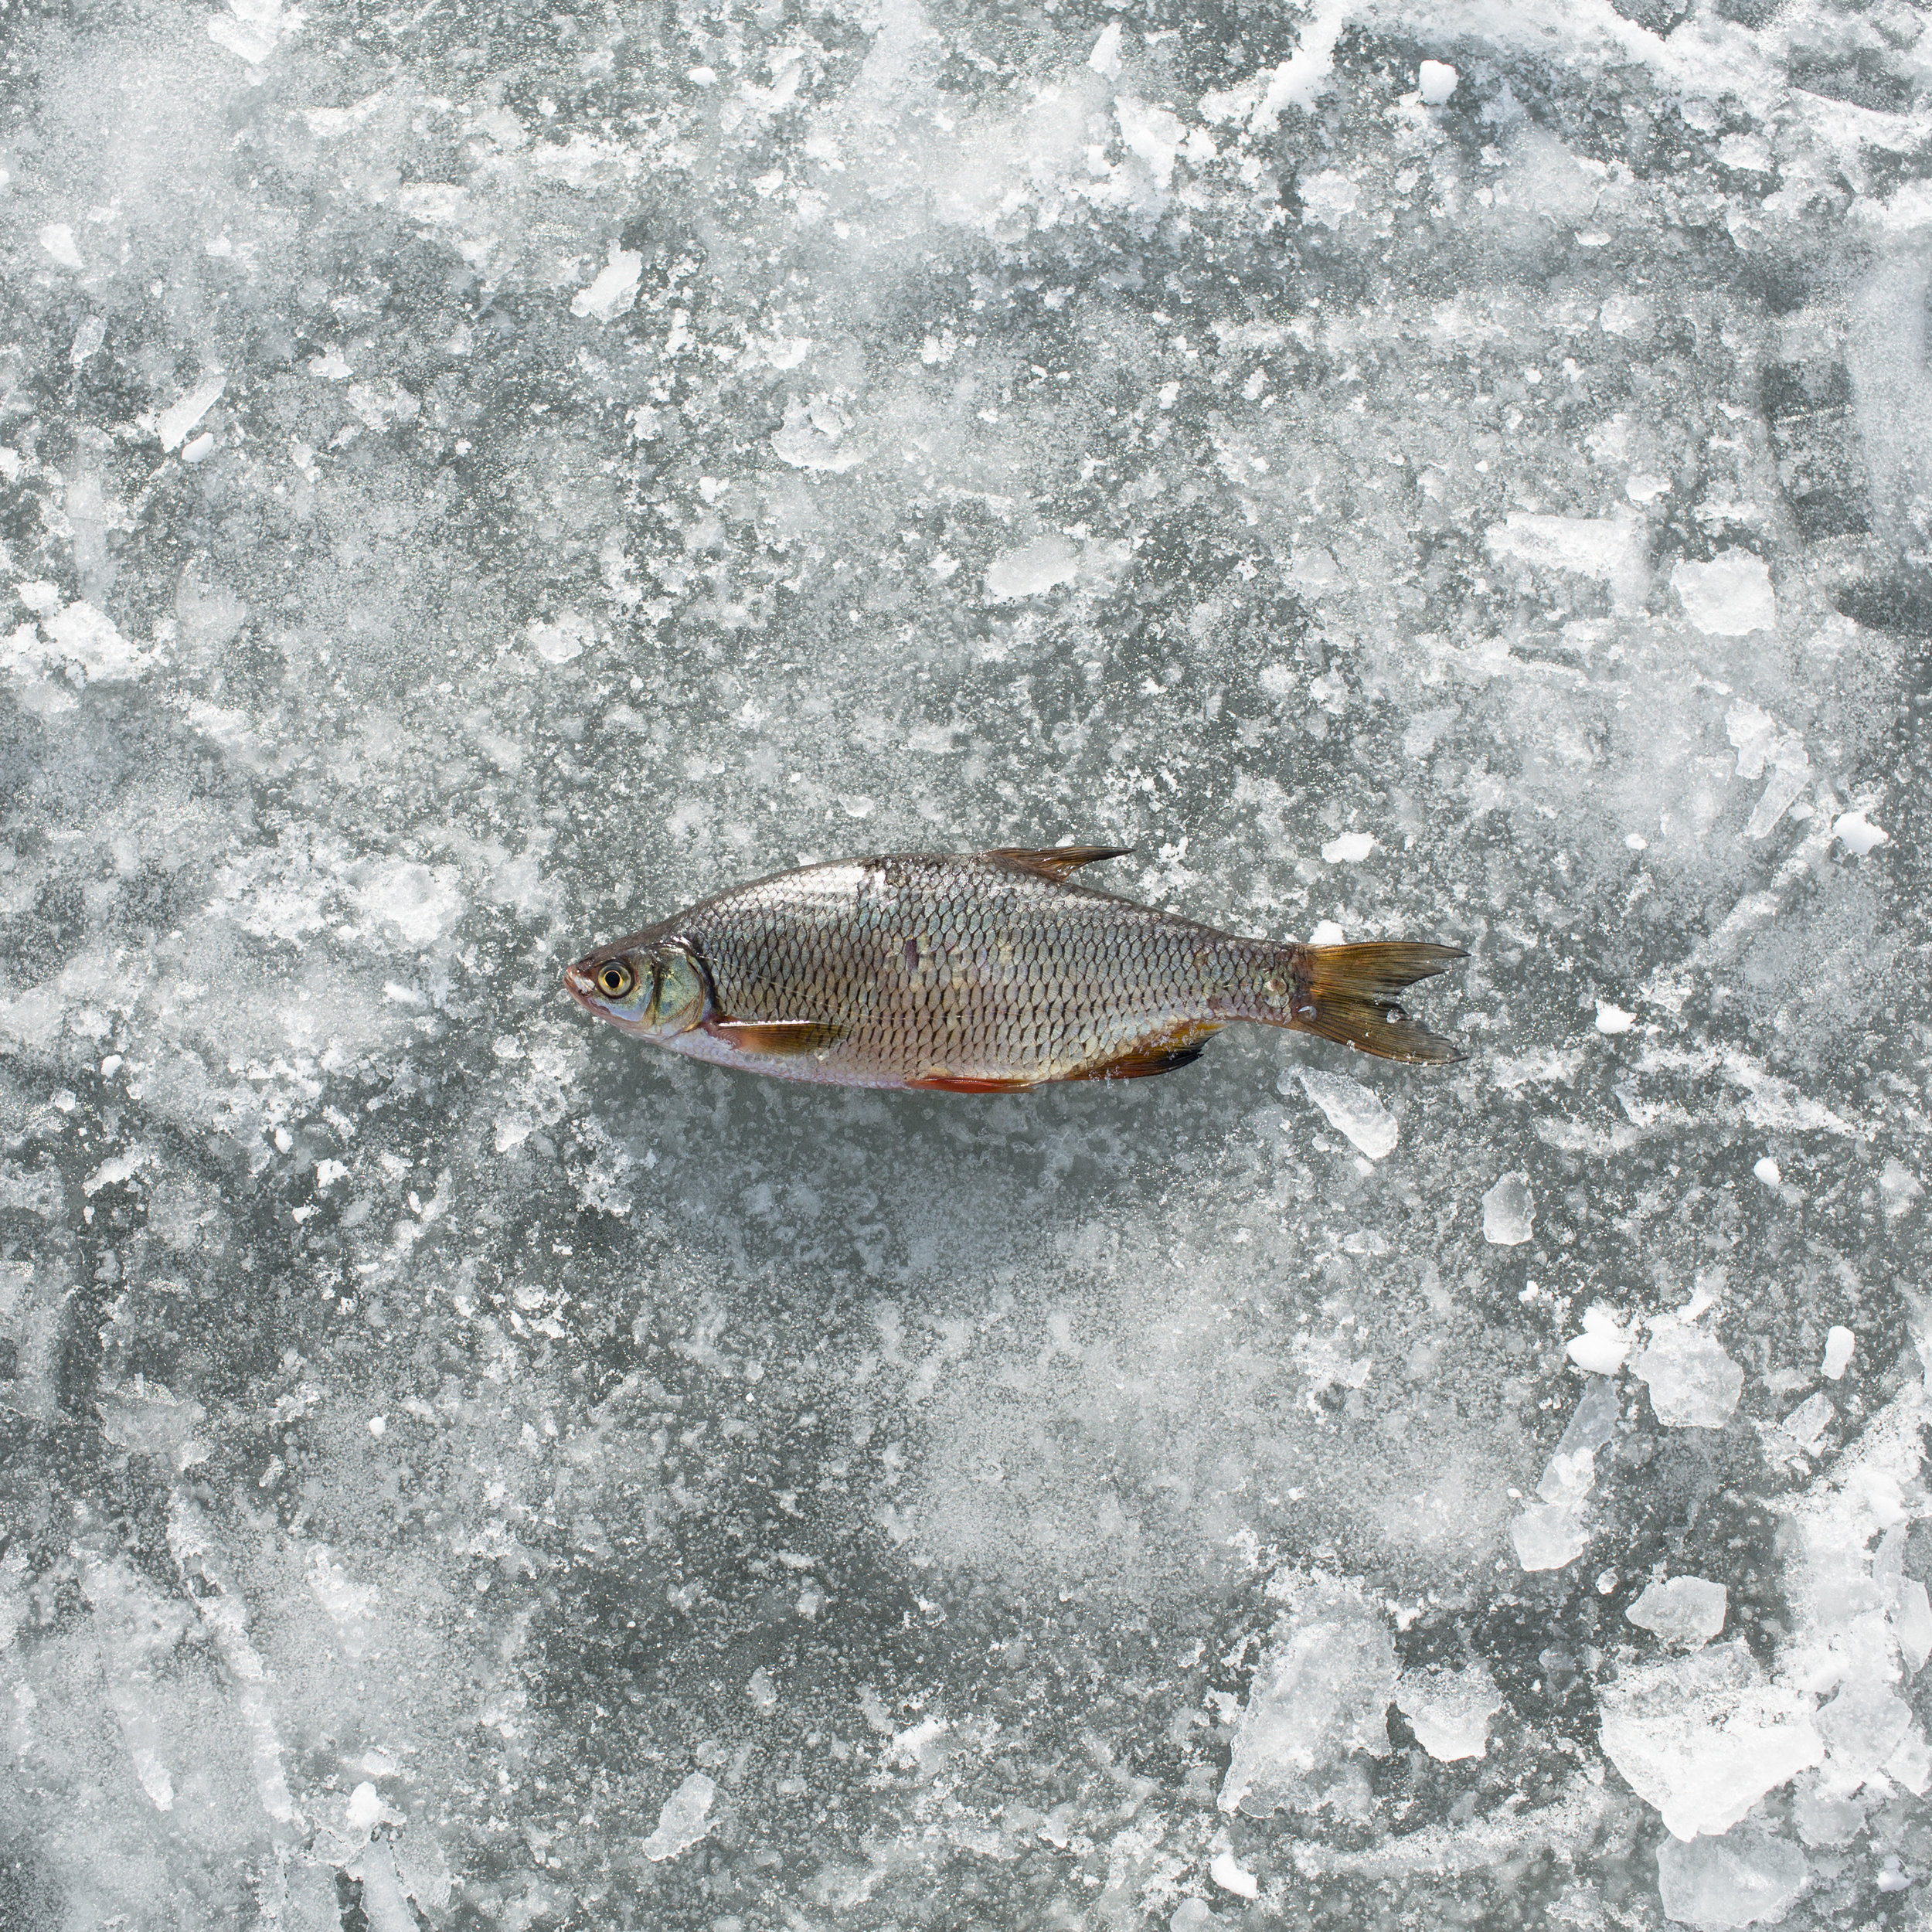 Photograph by Federico Pardo, from the exhibit  Ice Shanties: Fishing, People and Culture.